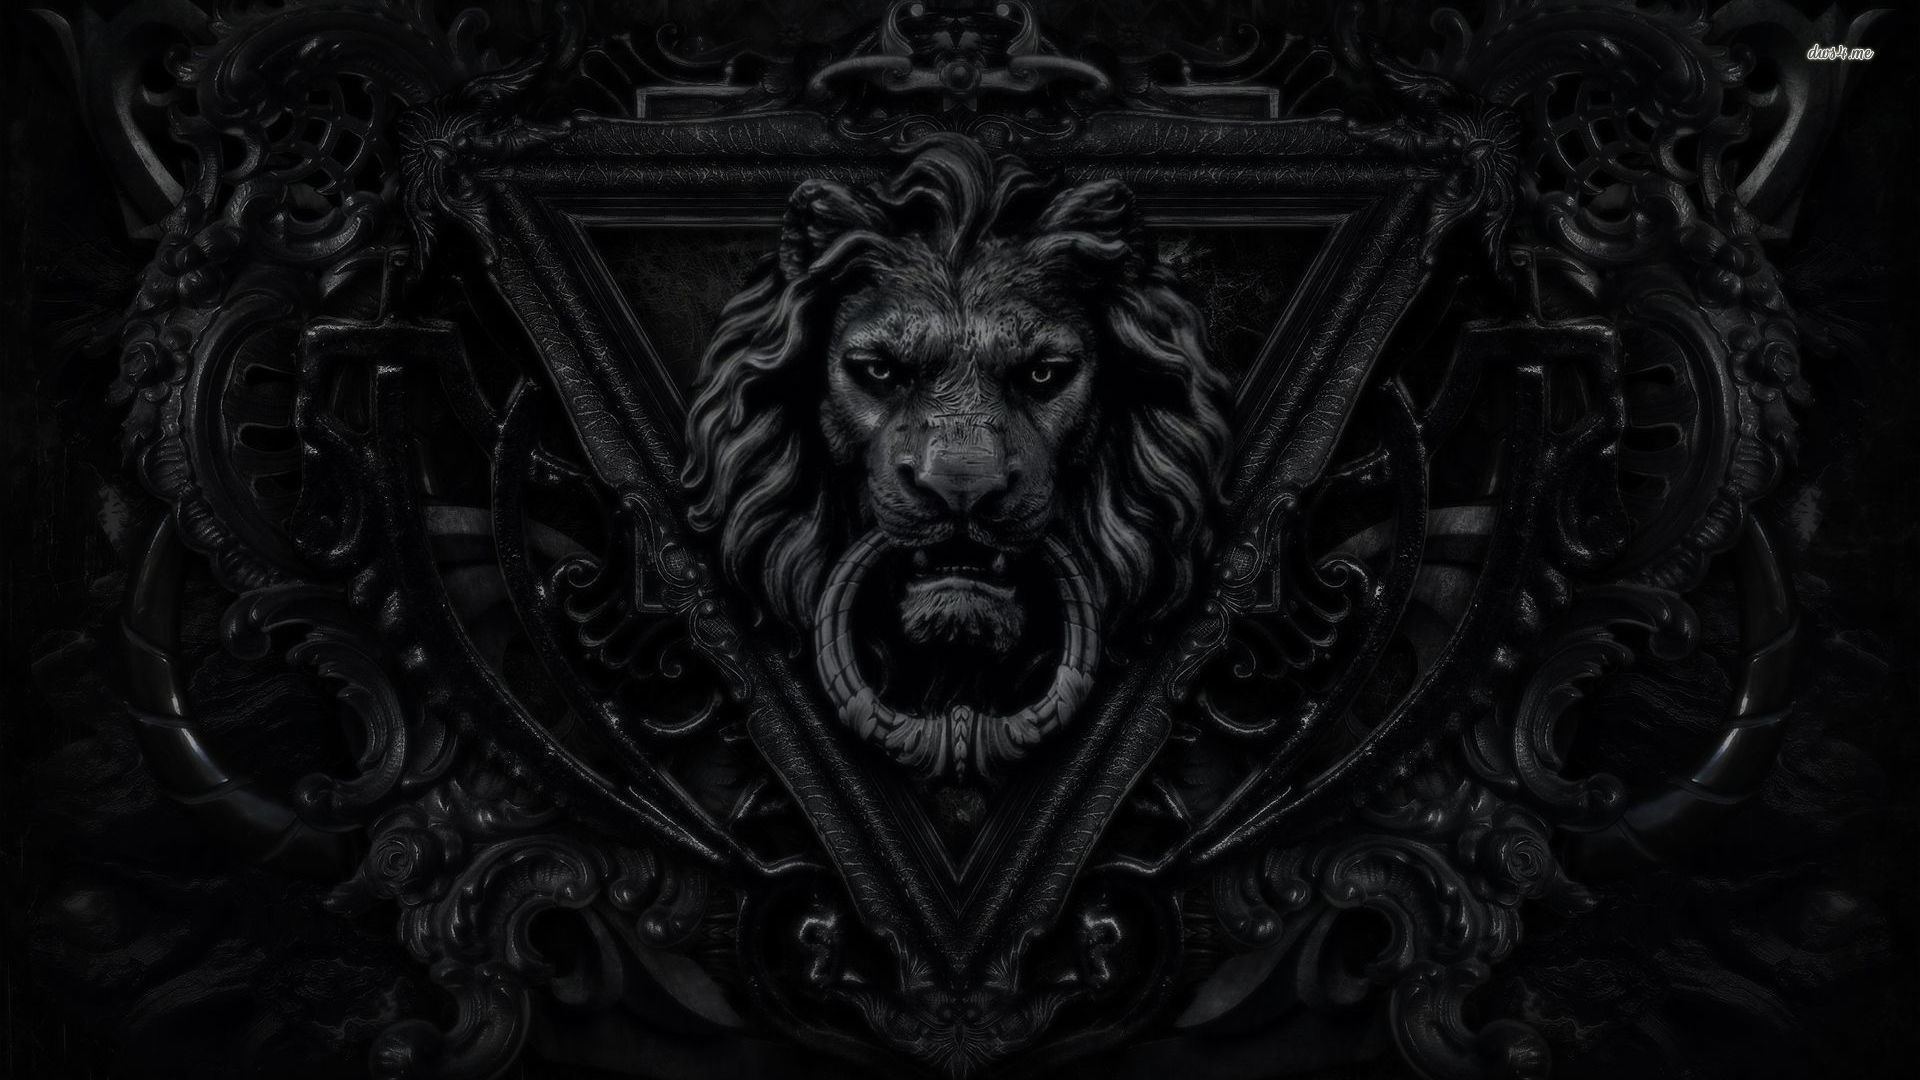 Black Lion Hd Wallpapers Posted By Christopher Anderson